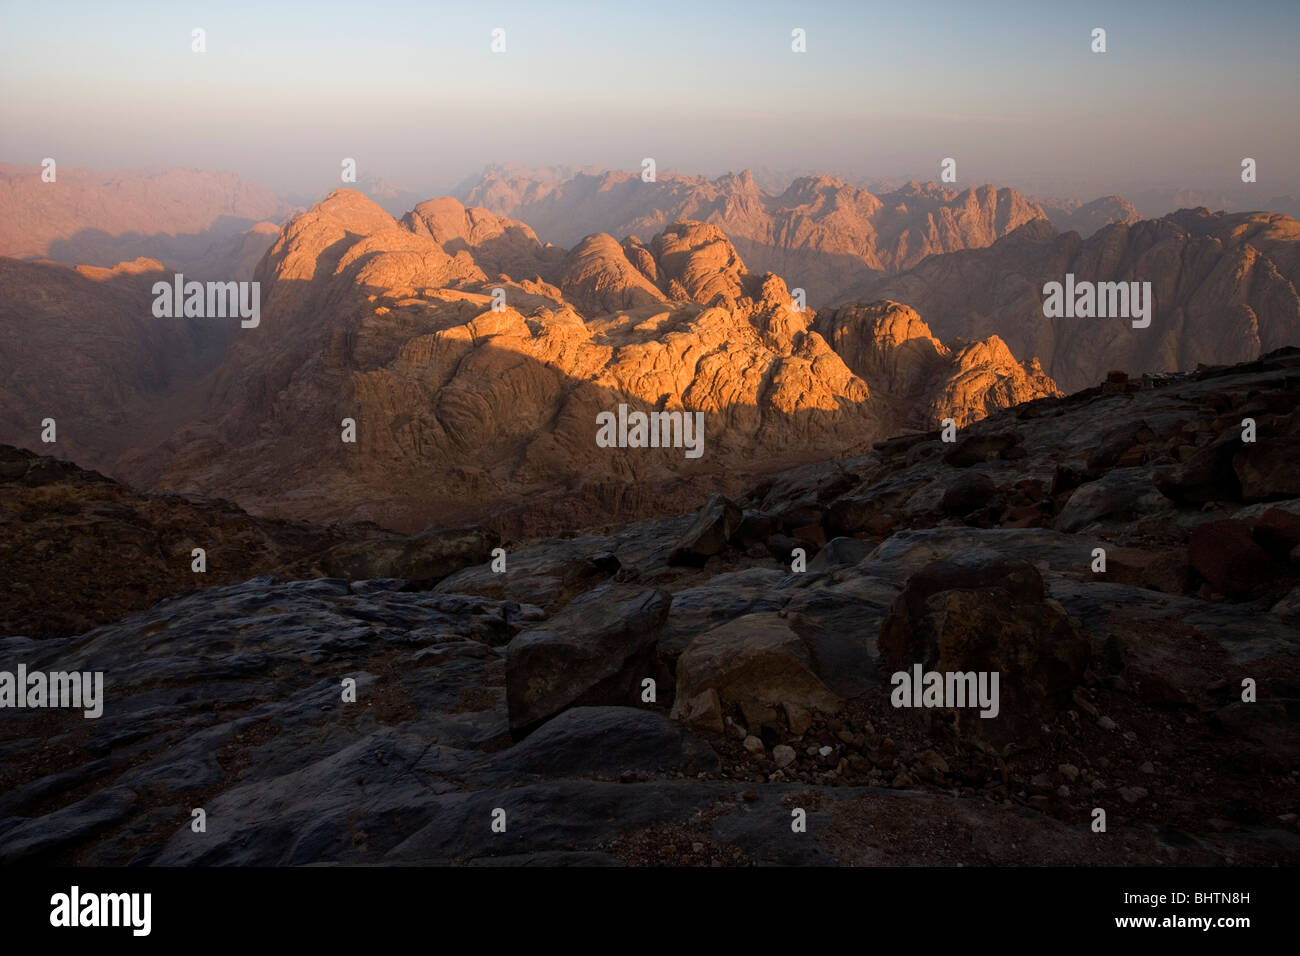 View from the summit of Mount Sinai at sunrise, Saint Katherine, Egypt. - Stock Image